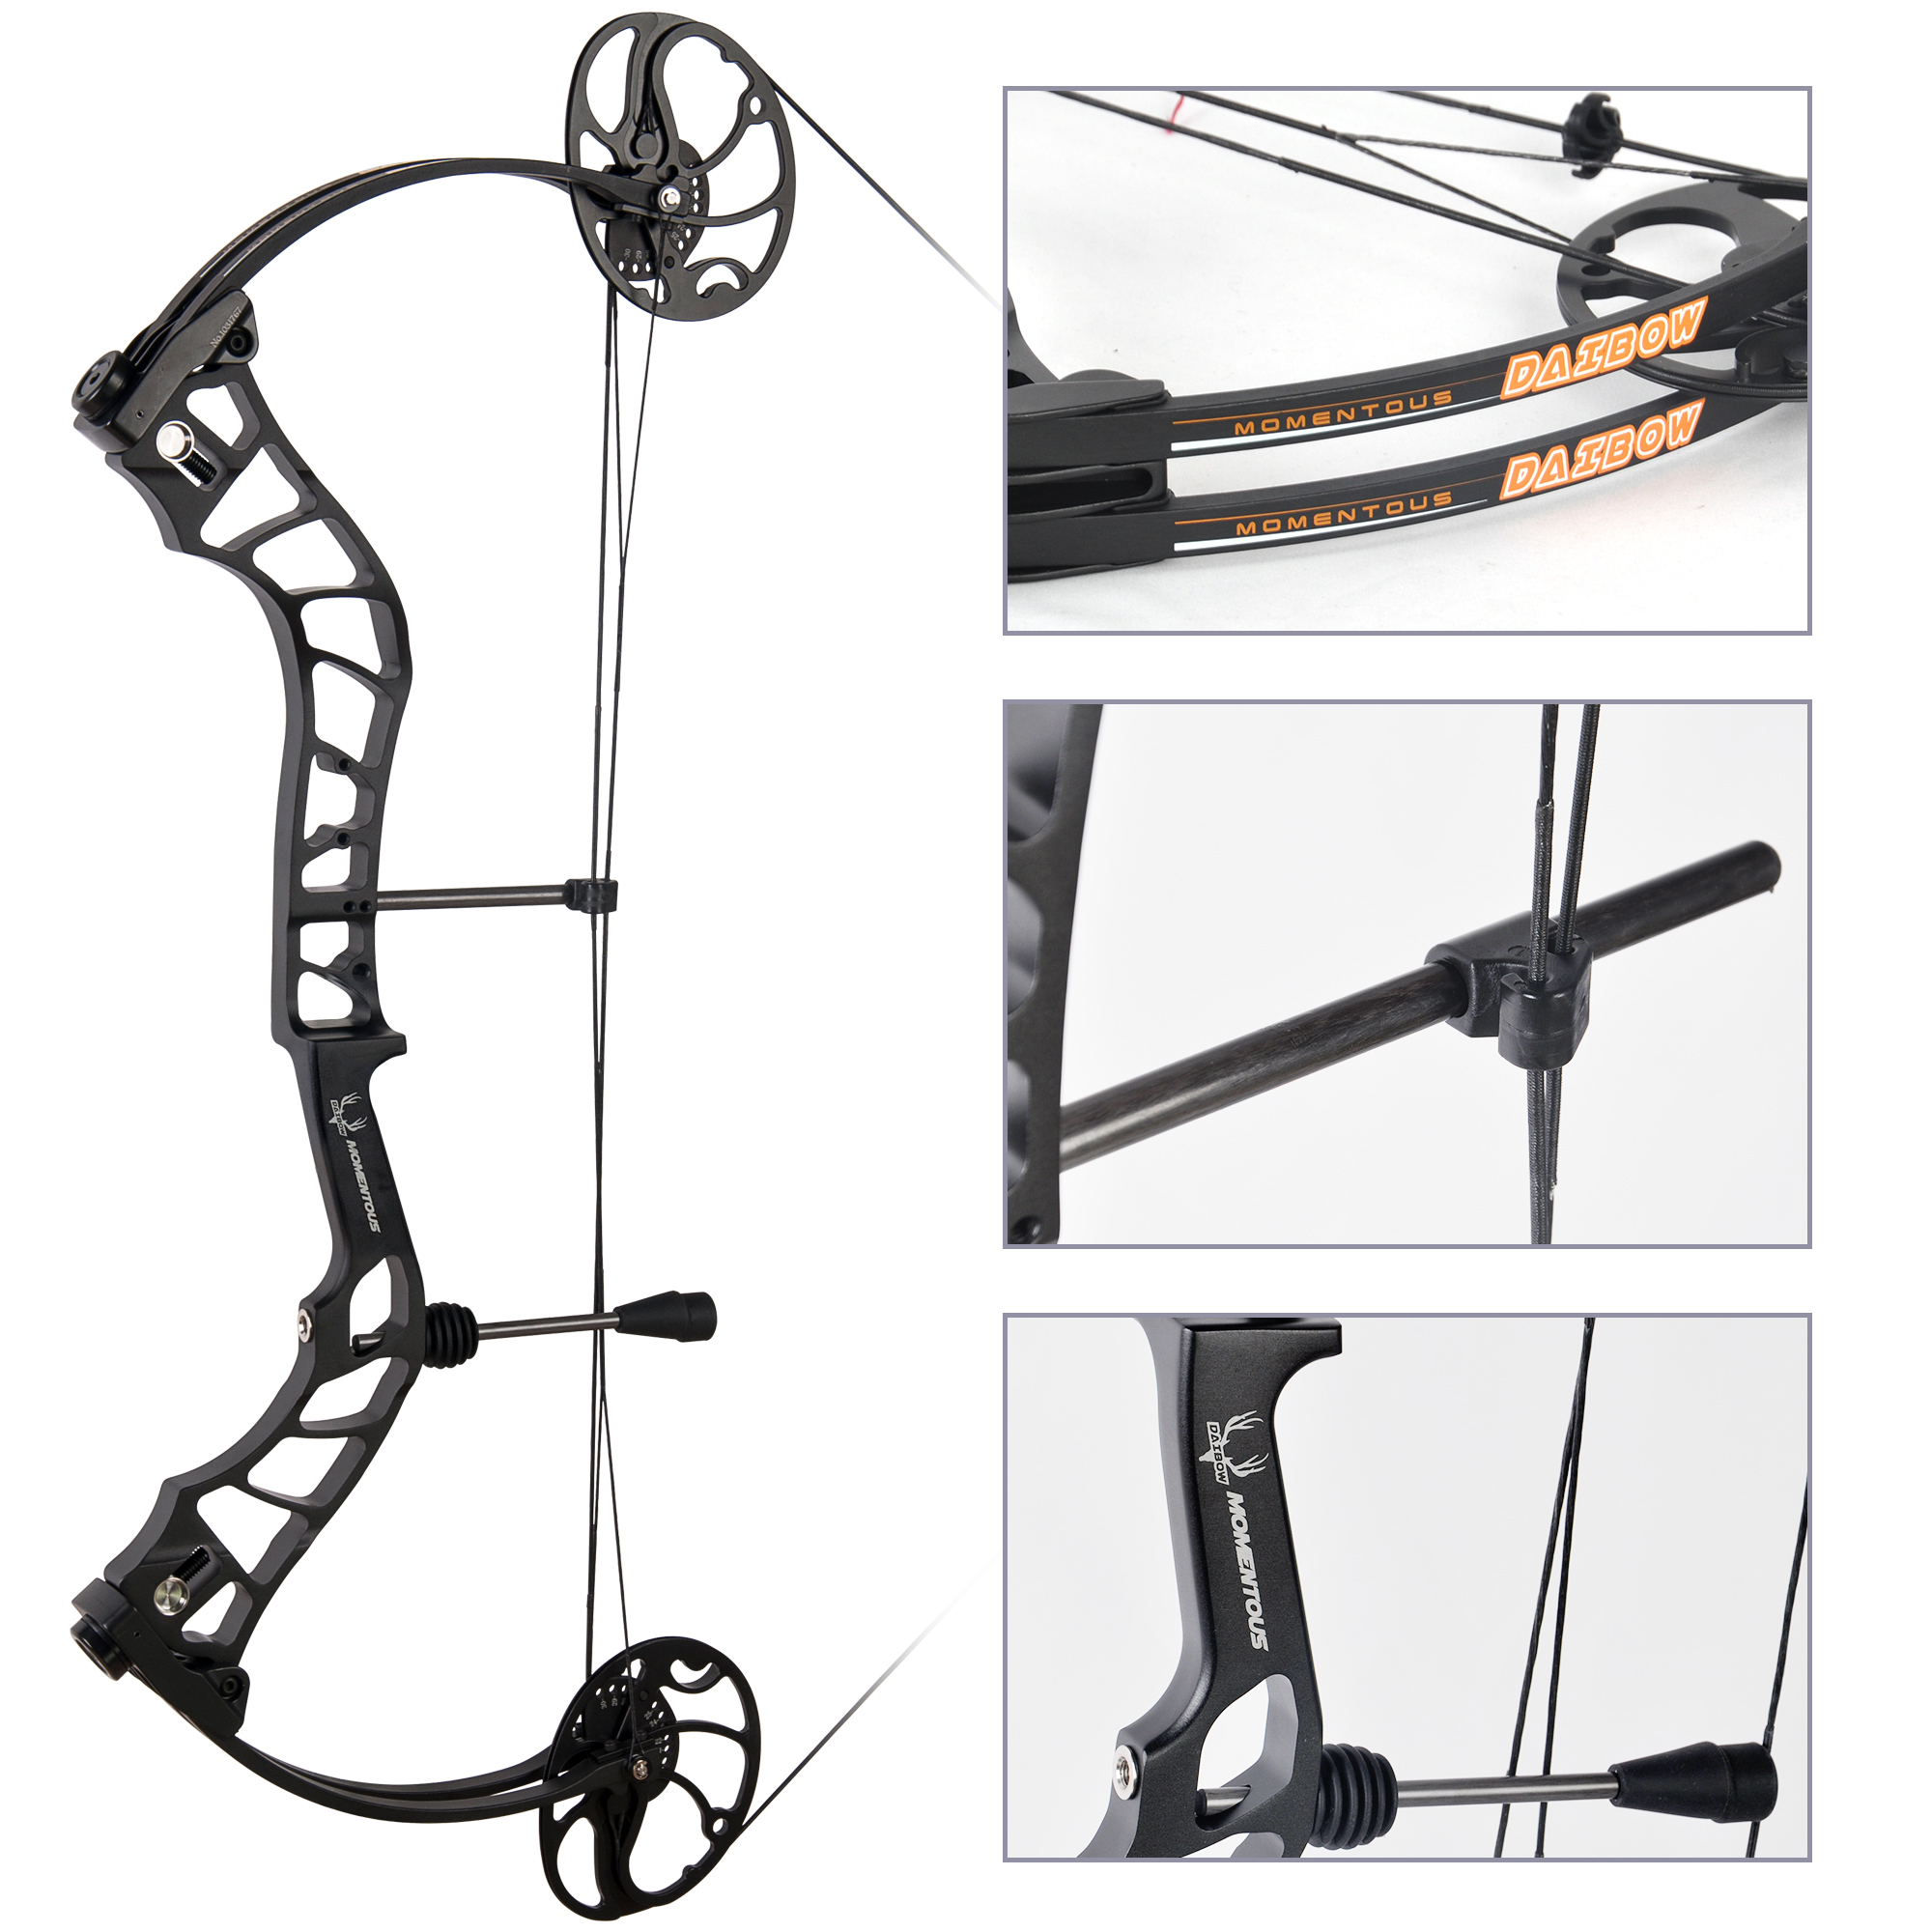 Adjustable Compound Bow Full Package, USA Gordon Composites Limb Archery 3